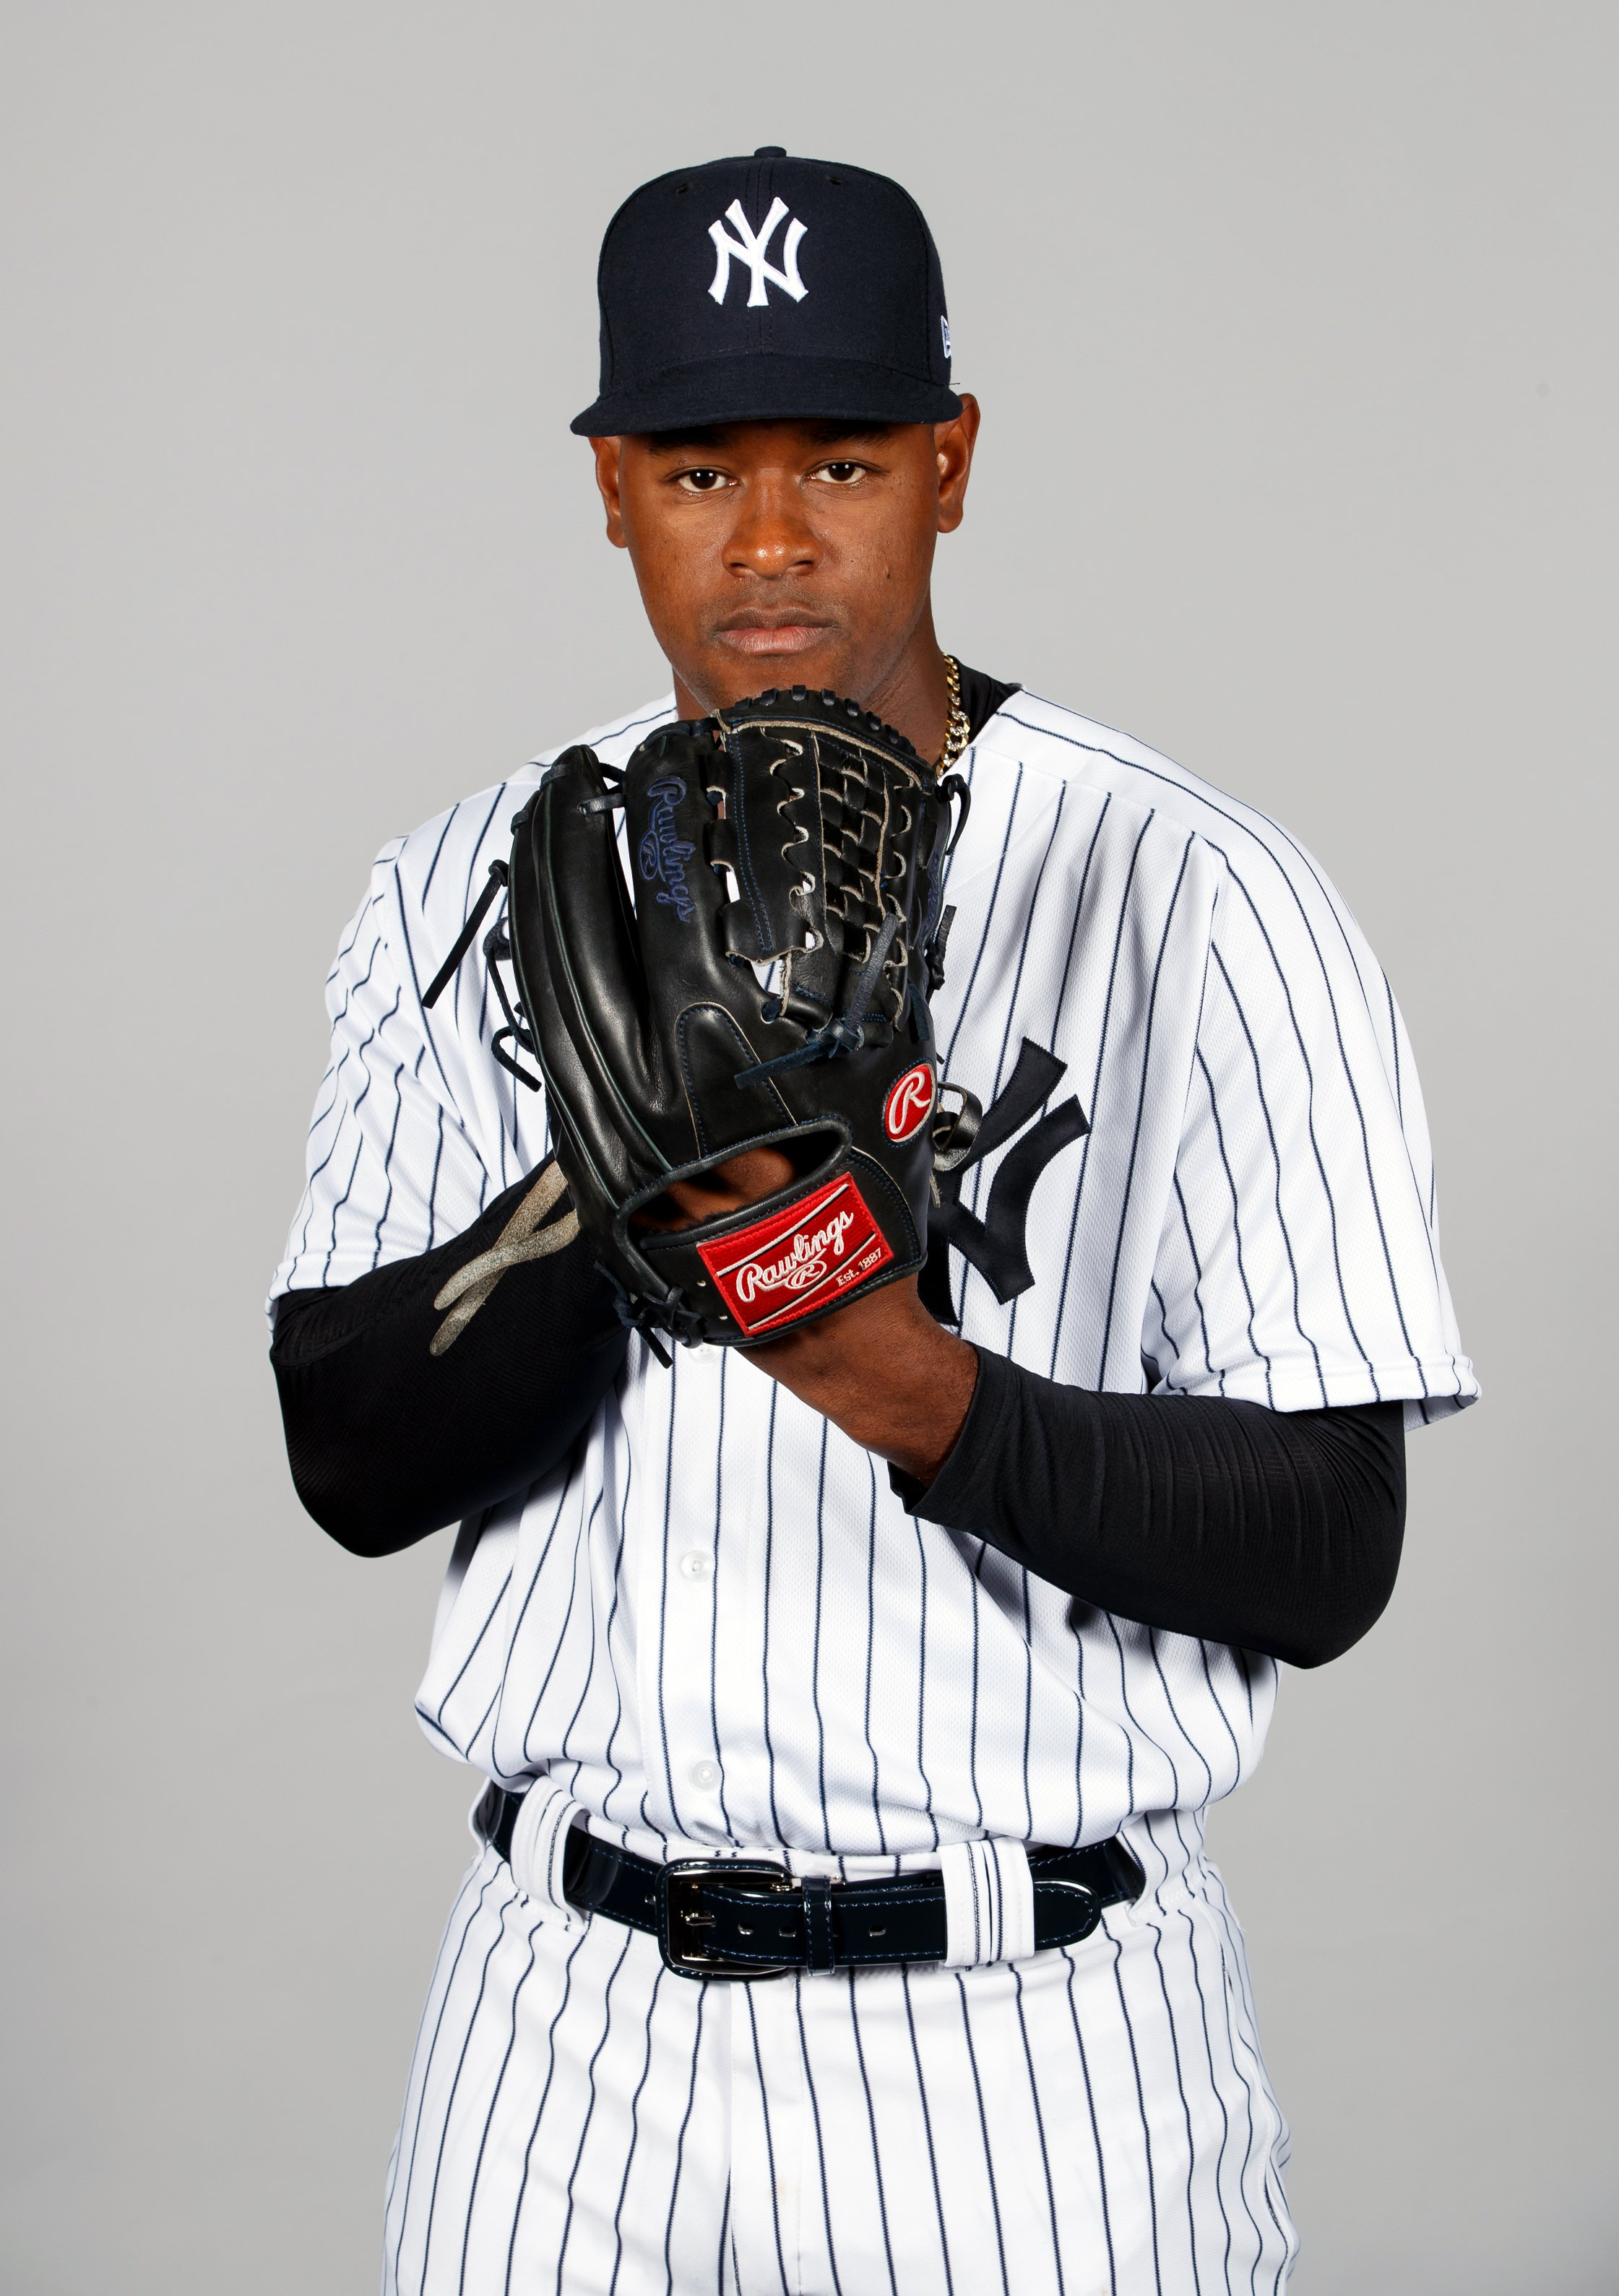 Luis Severino #40 of the New York Yankees poses during Photo Day on Thursday, February 20, 2020 | Photo: Getty Images